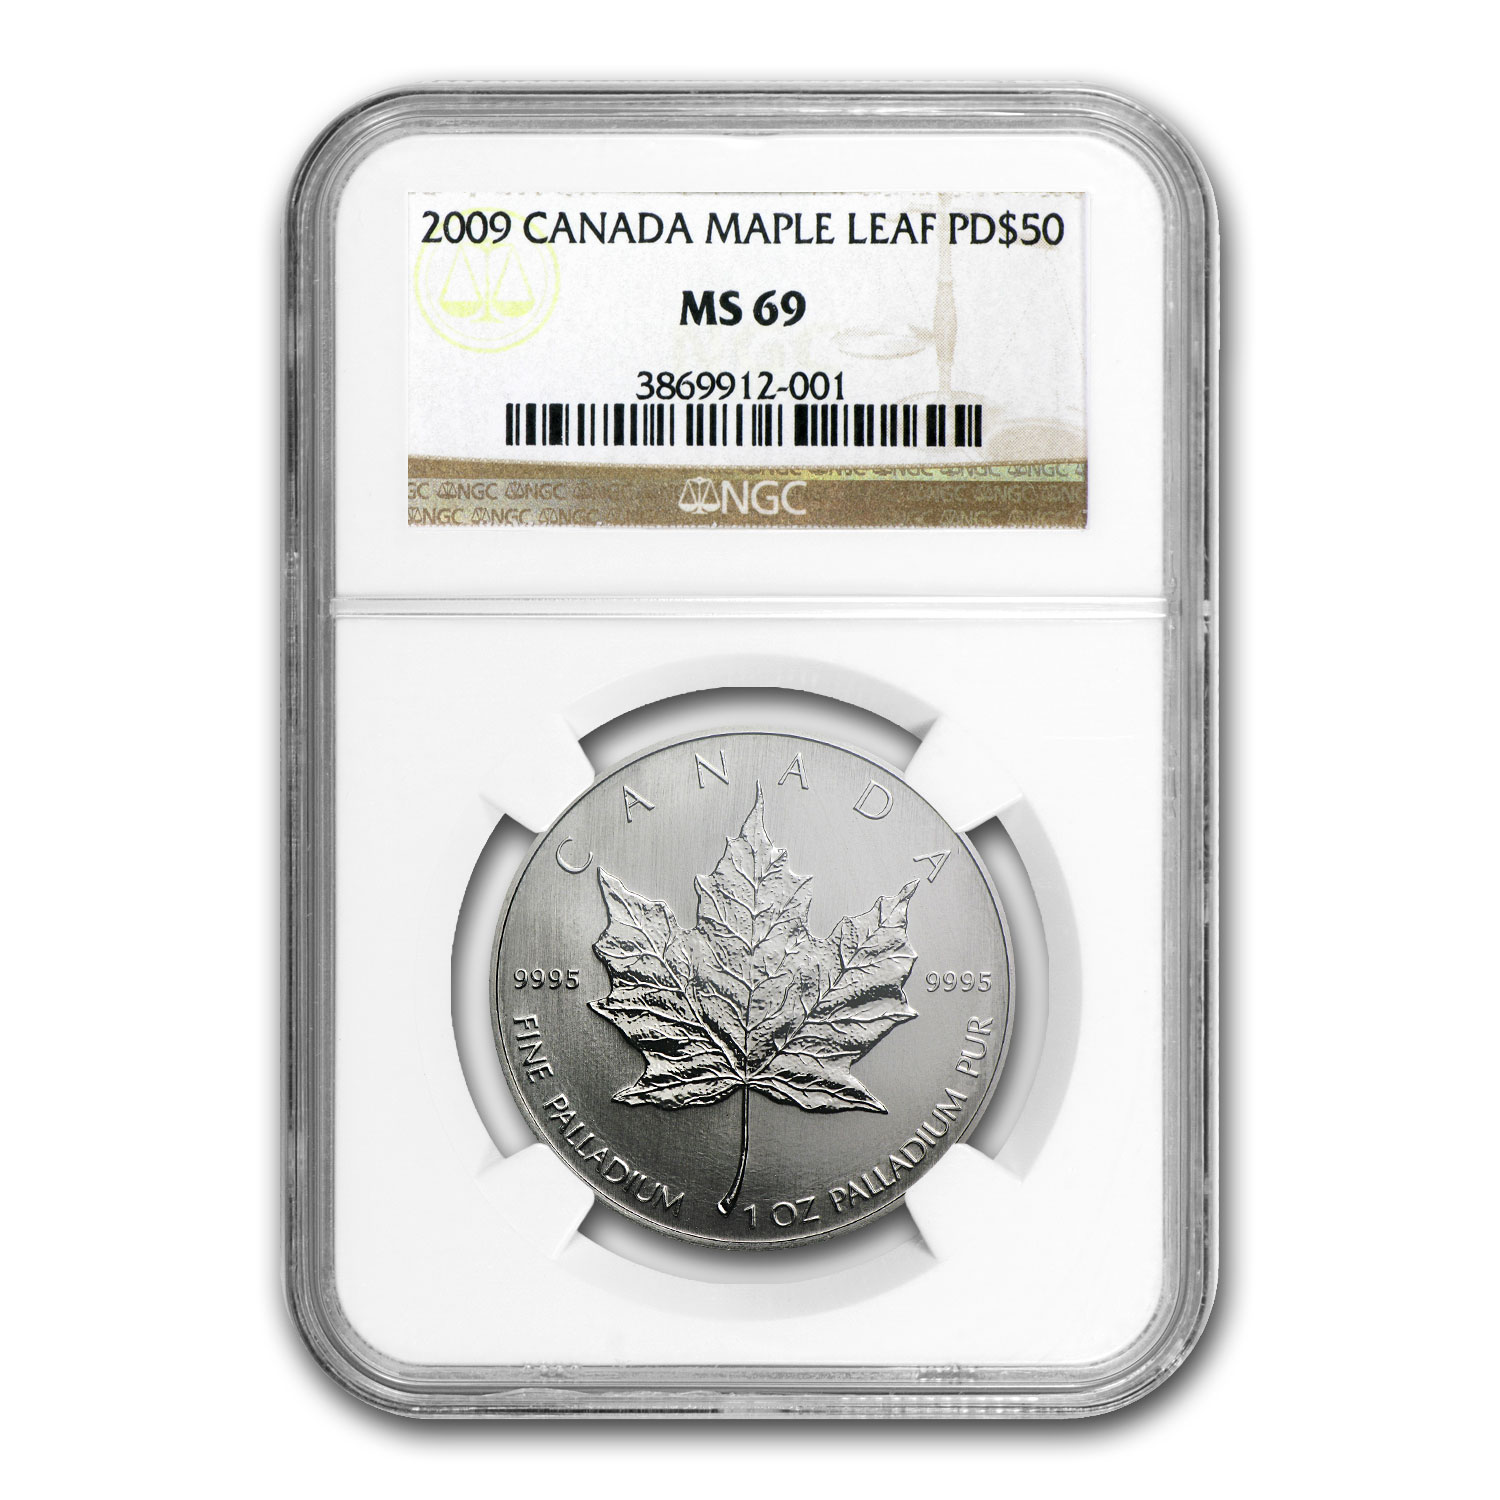 2009 Canada 1 oz Palladium Maple Leaf MS-69 NGC